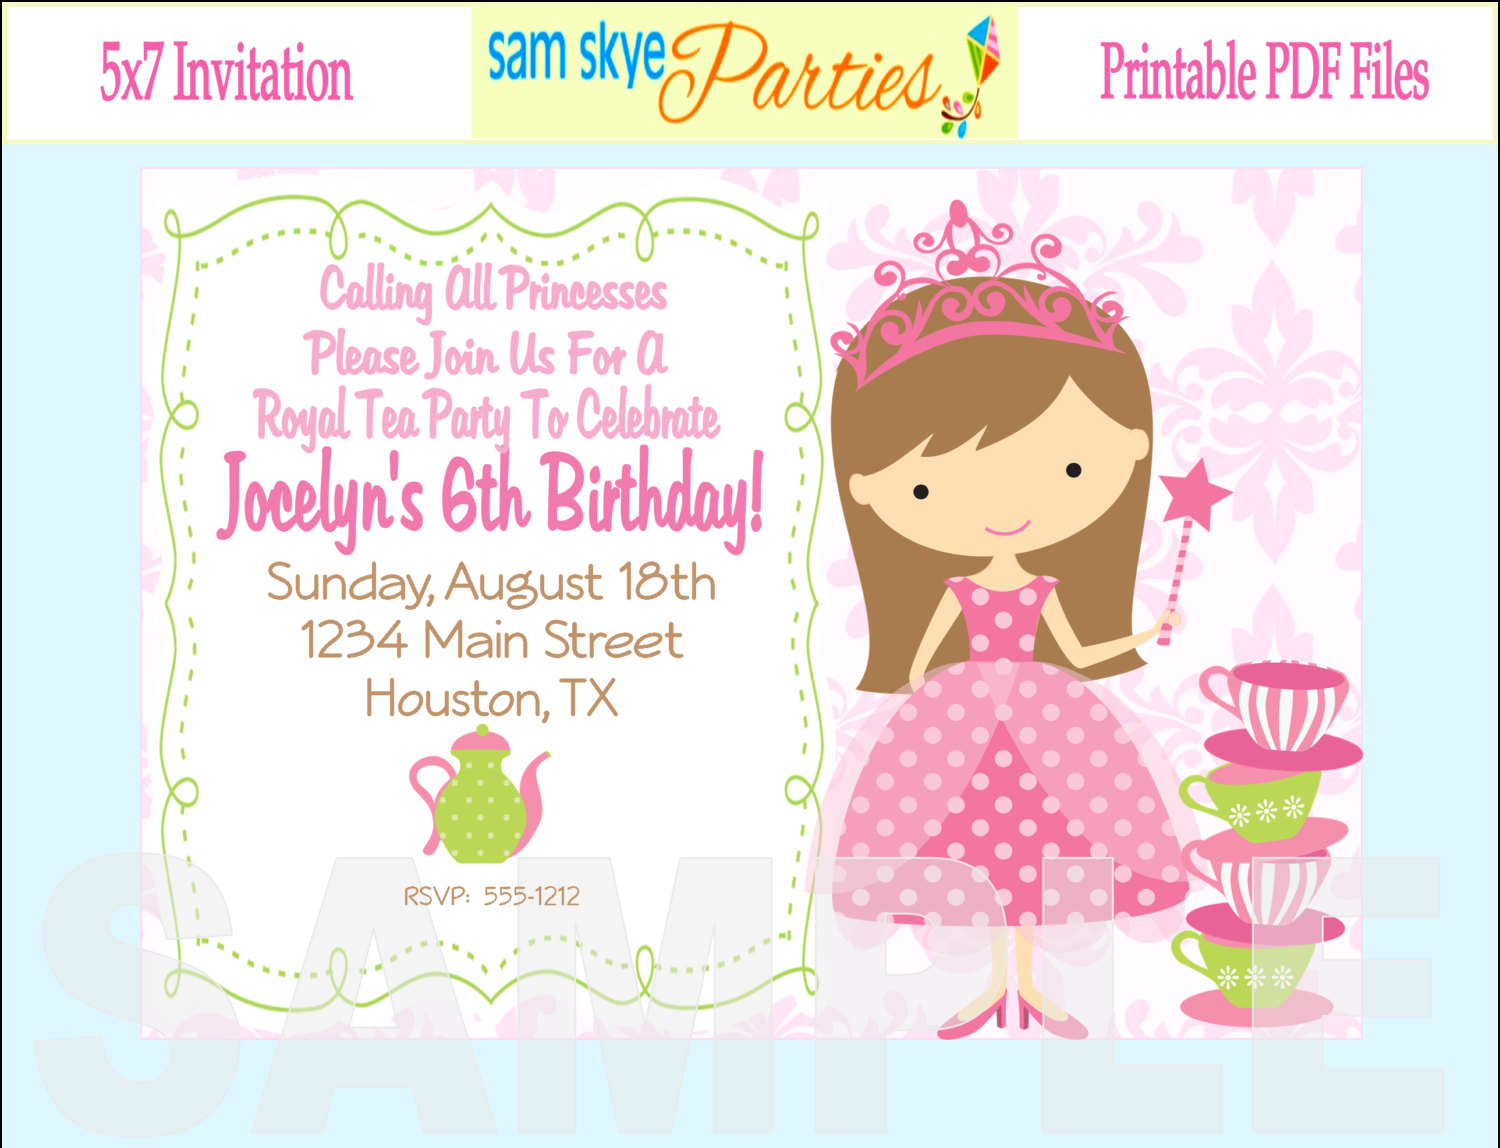 Kids Birthday Party Invitation Template | | DolanPedia Invitations ...